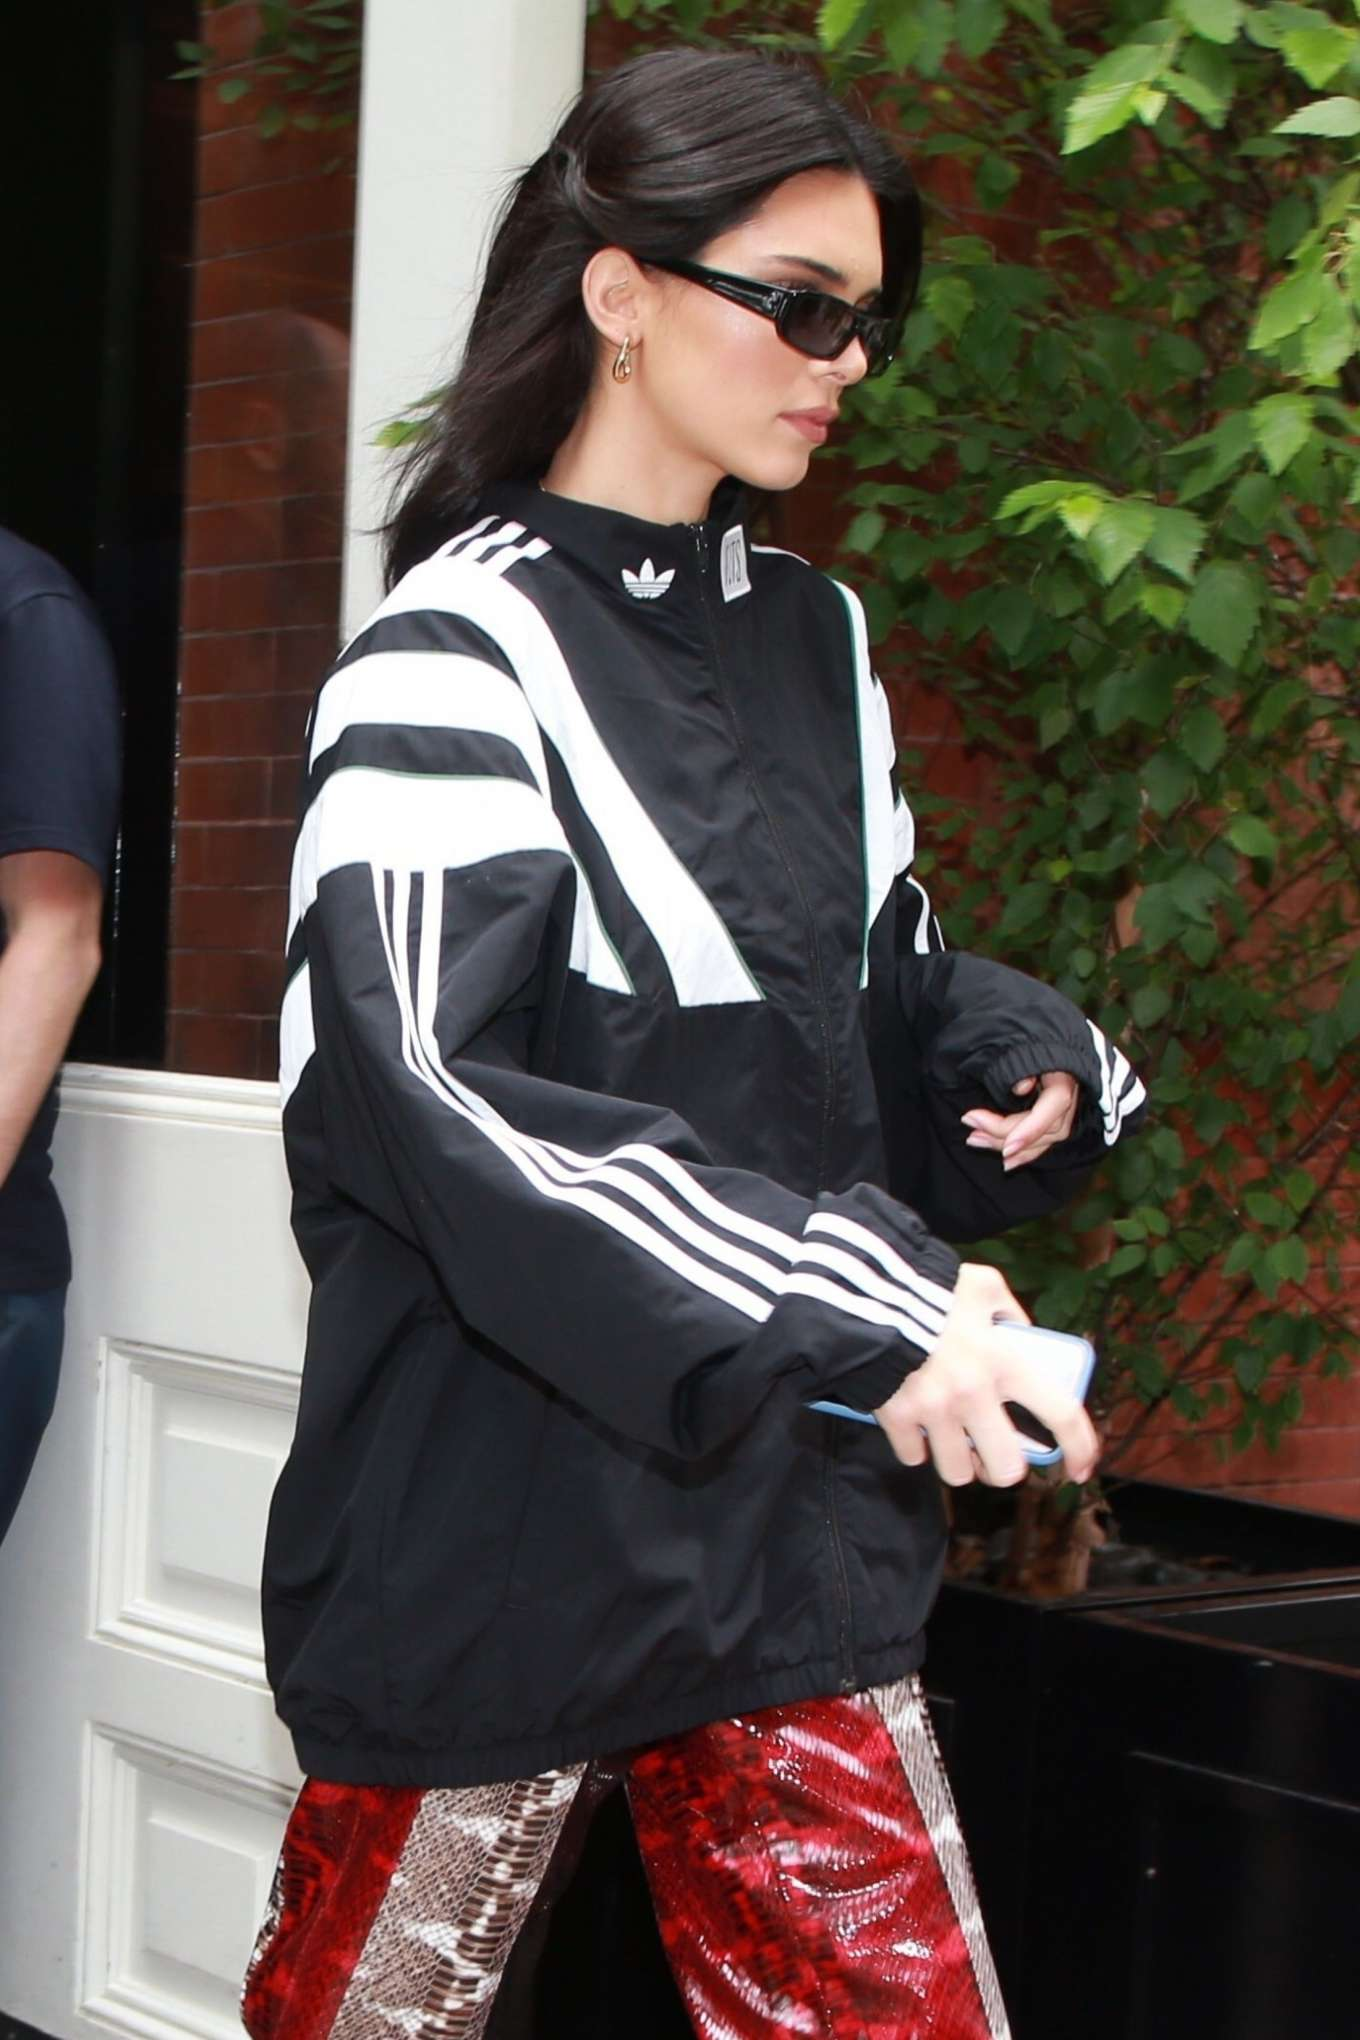 Kendall Jenner donning white Adidas lace-up sneakers